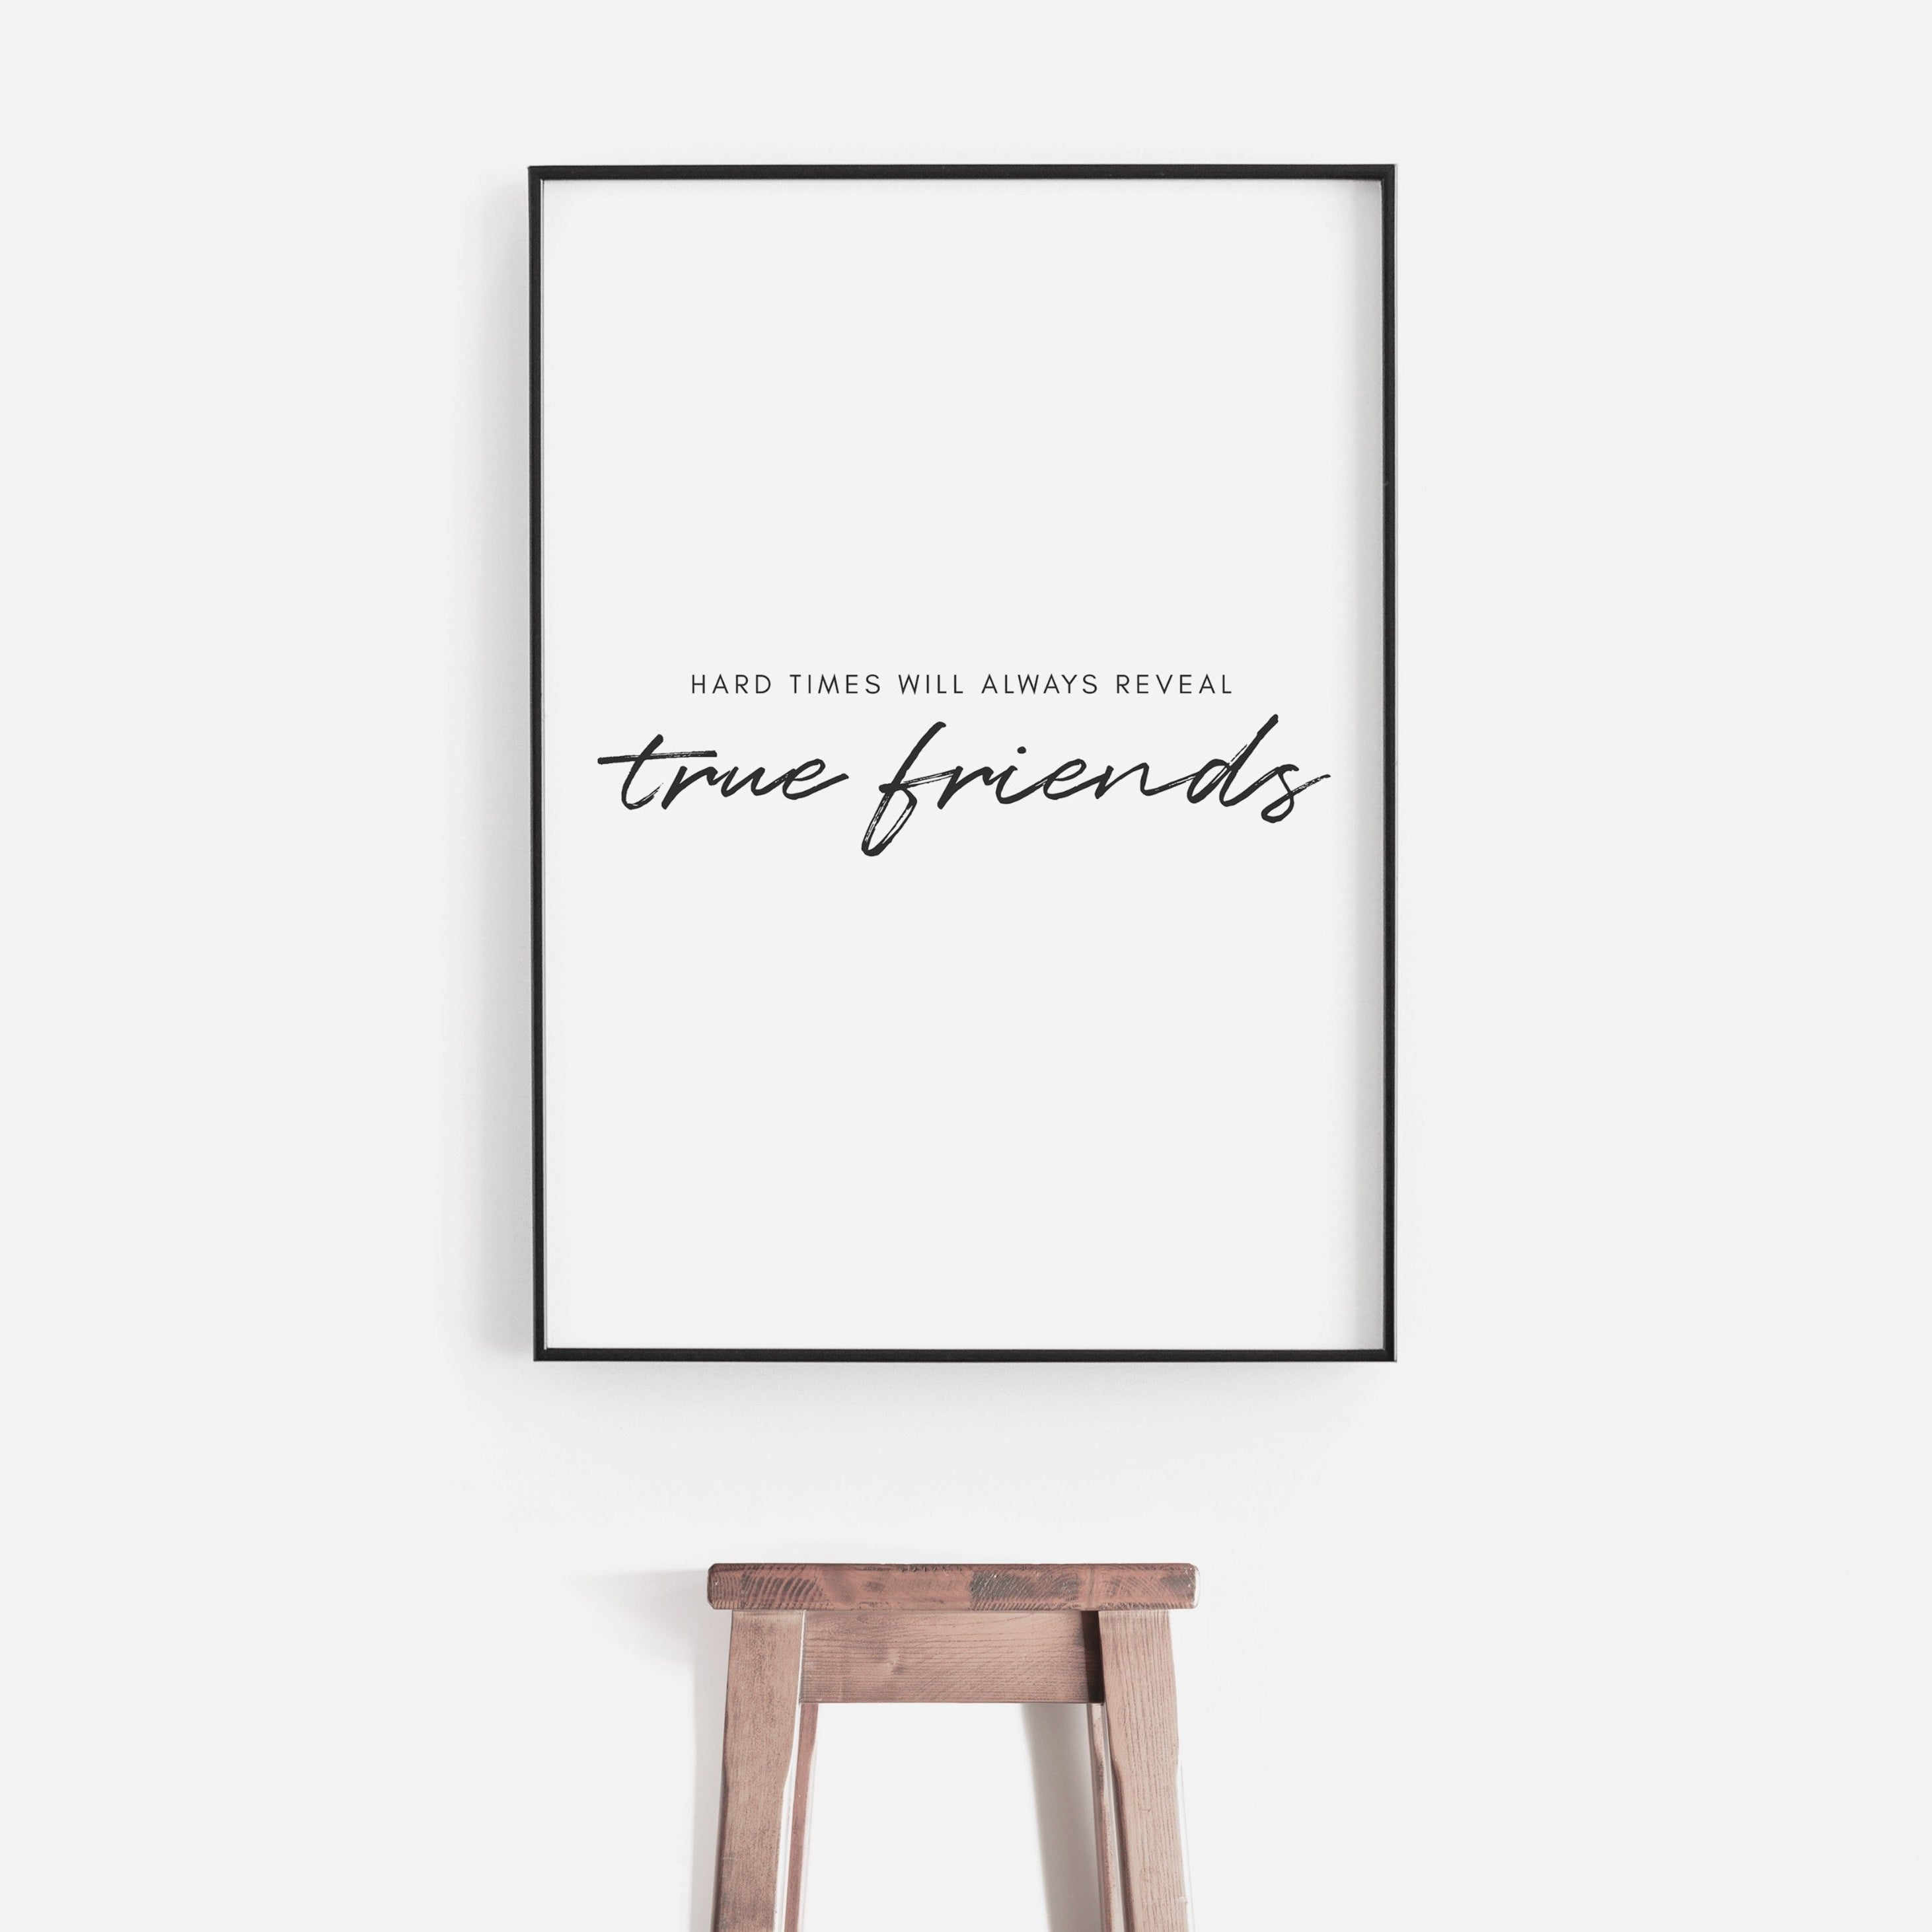 Hard Times Will Always Reveal True Friends download free printable A Book Of Words